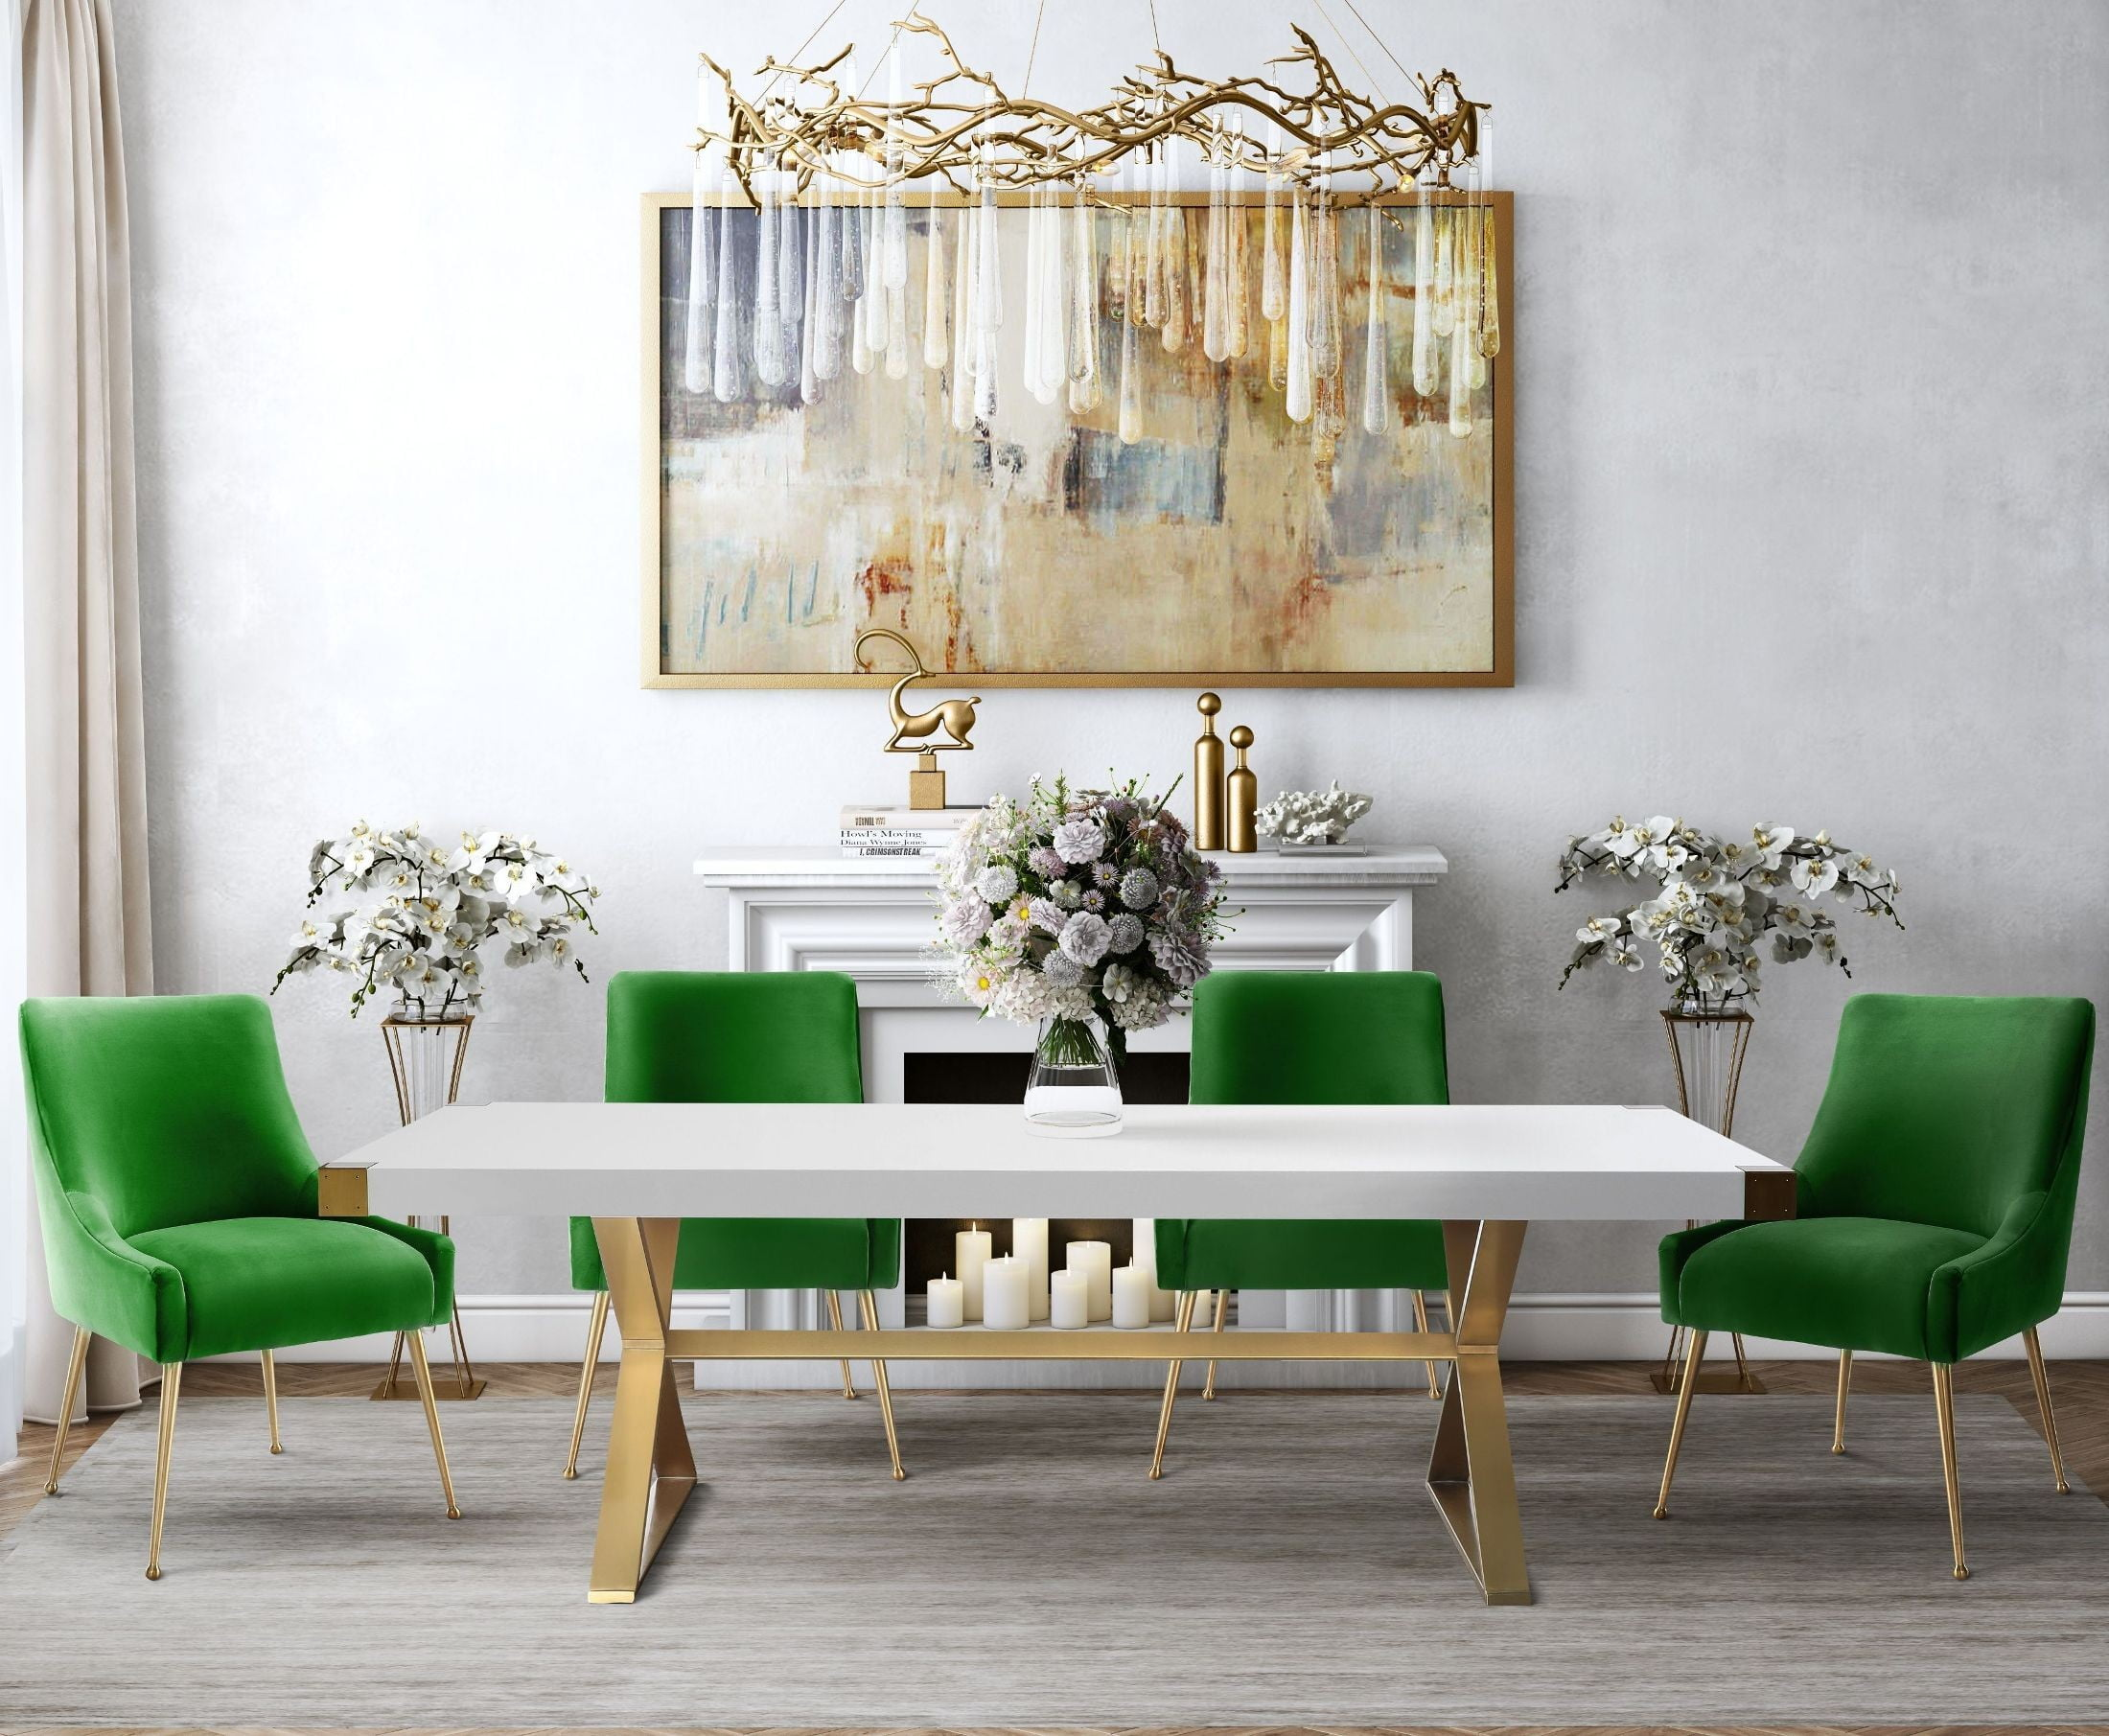 White And Gold Dining Chairs: Adeline White And Gold Rectangular Dining Room Set With